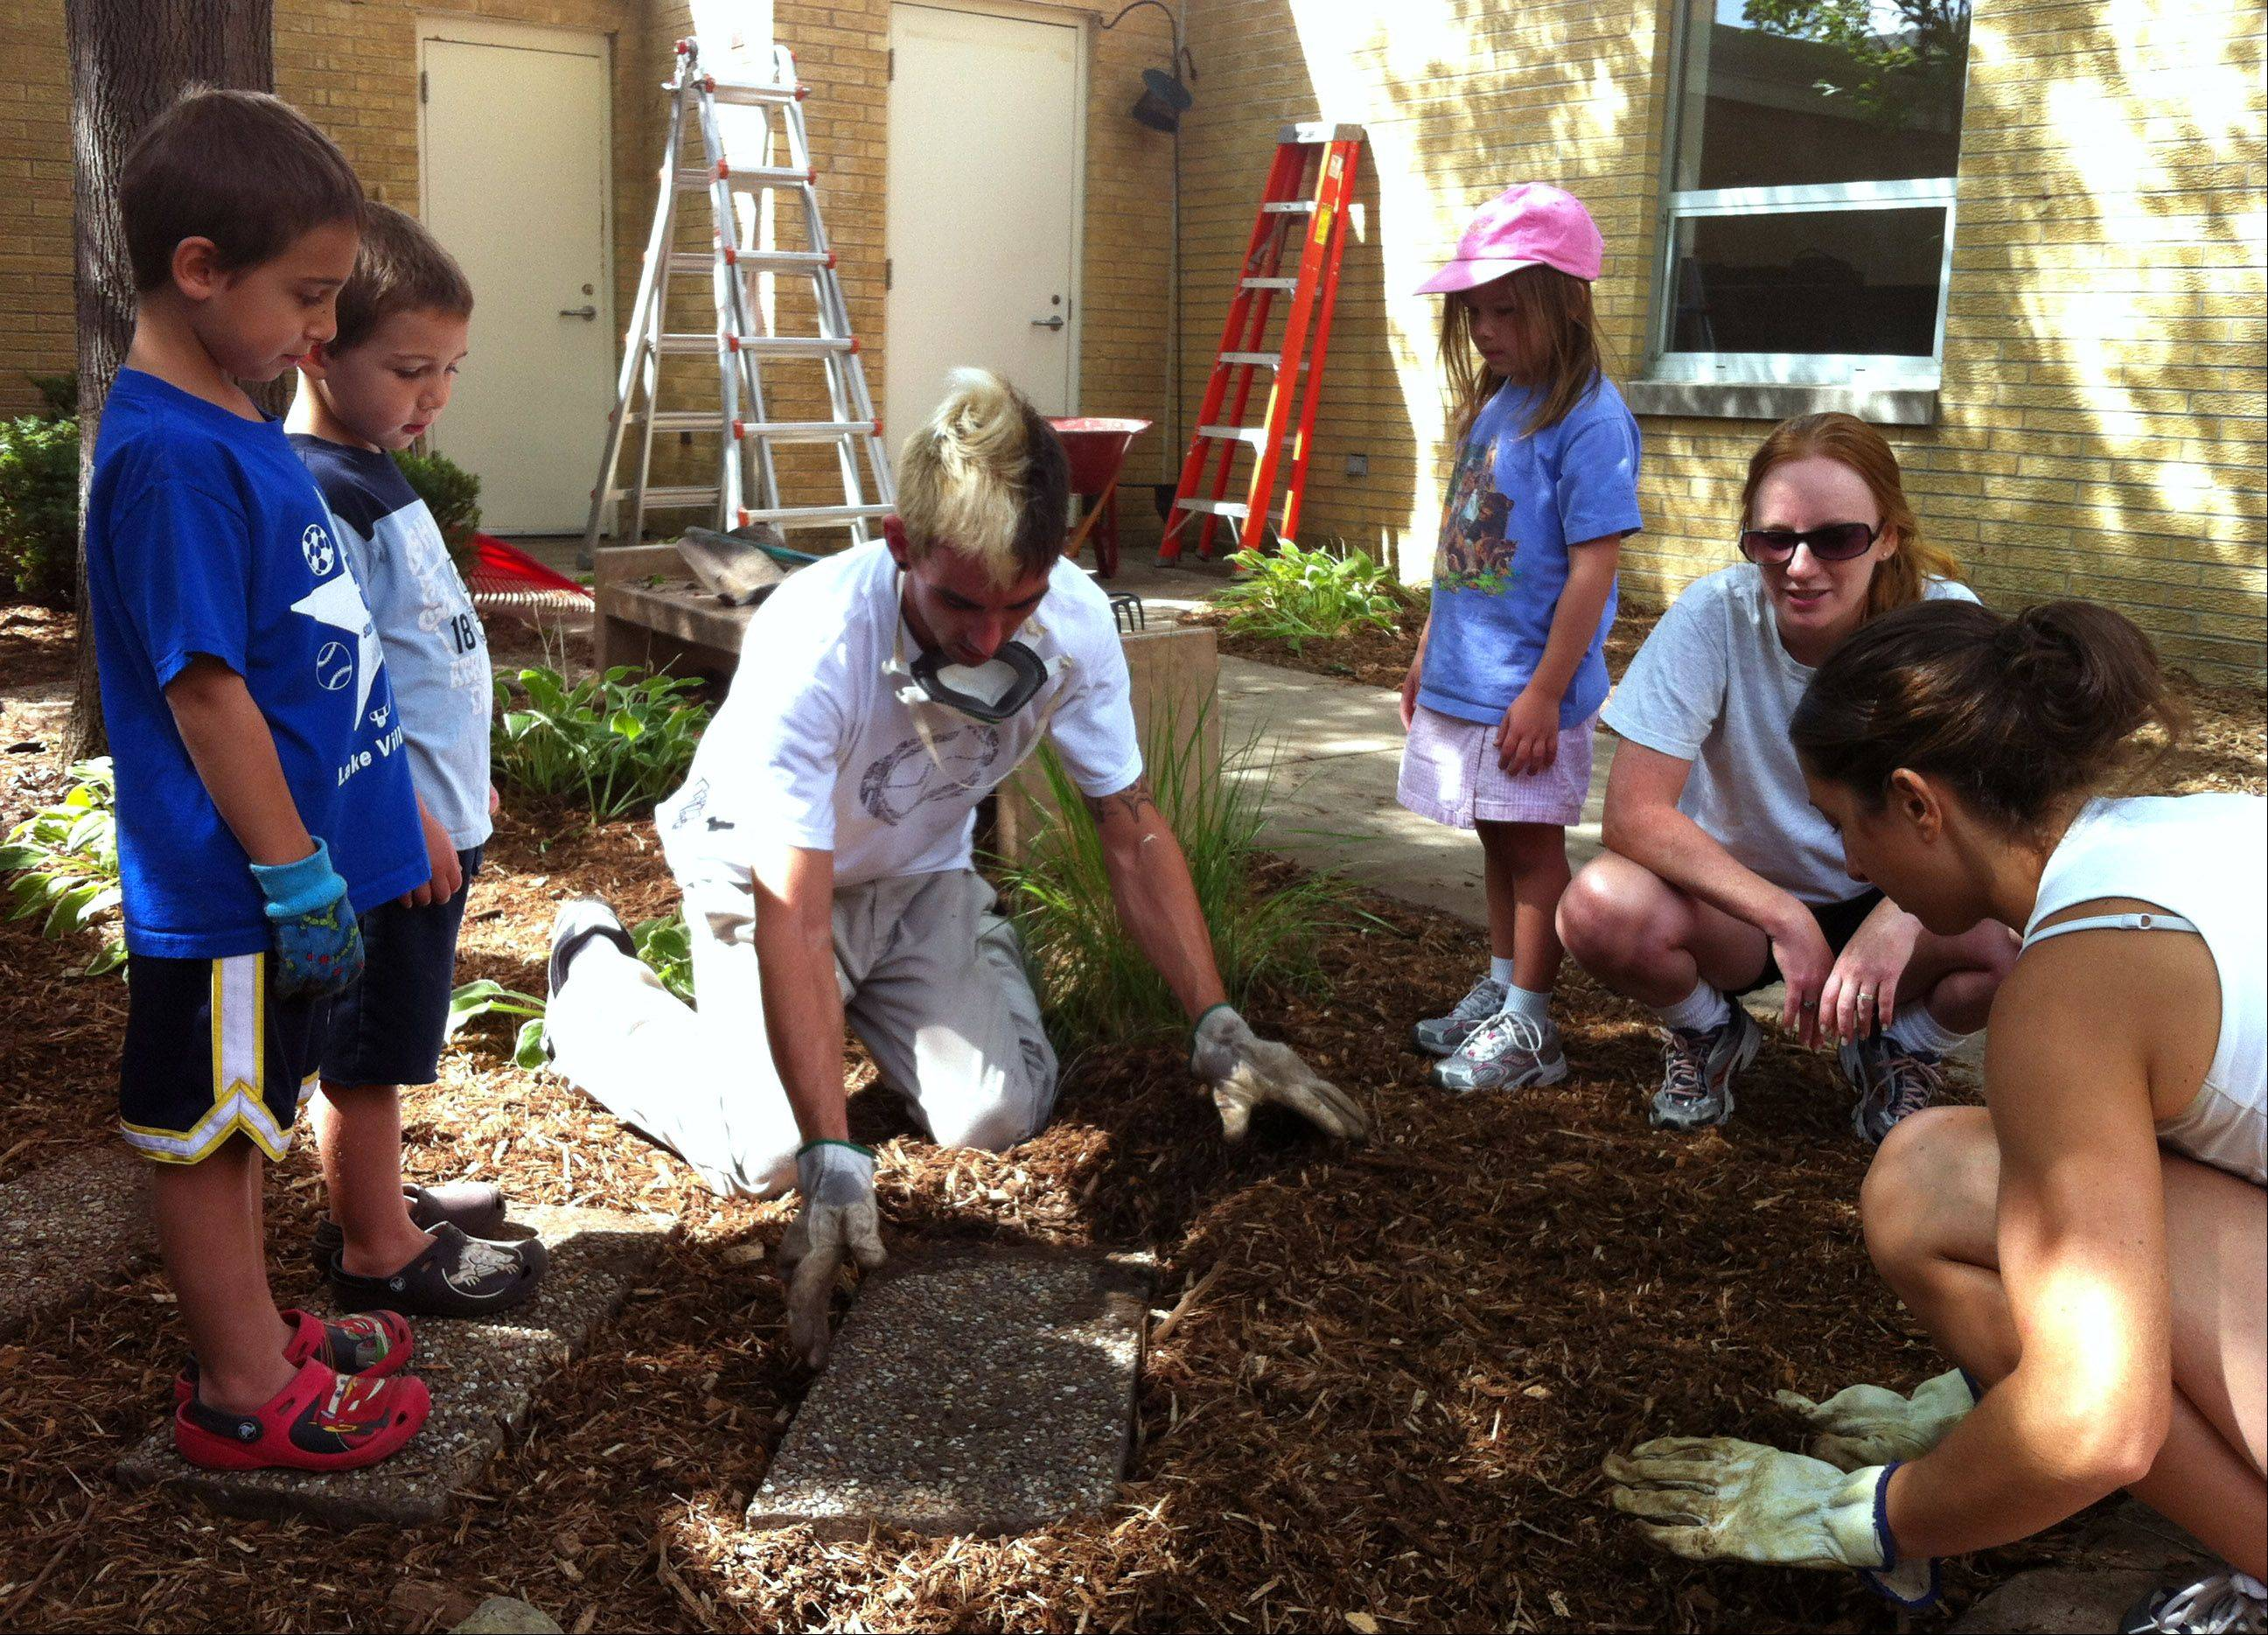 Volunteers work to give the courtyard at Fairhaven School in Mundelein a makeover.